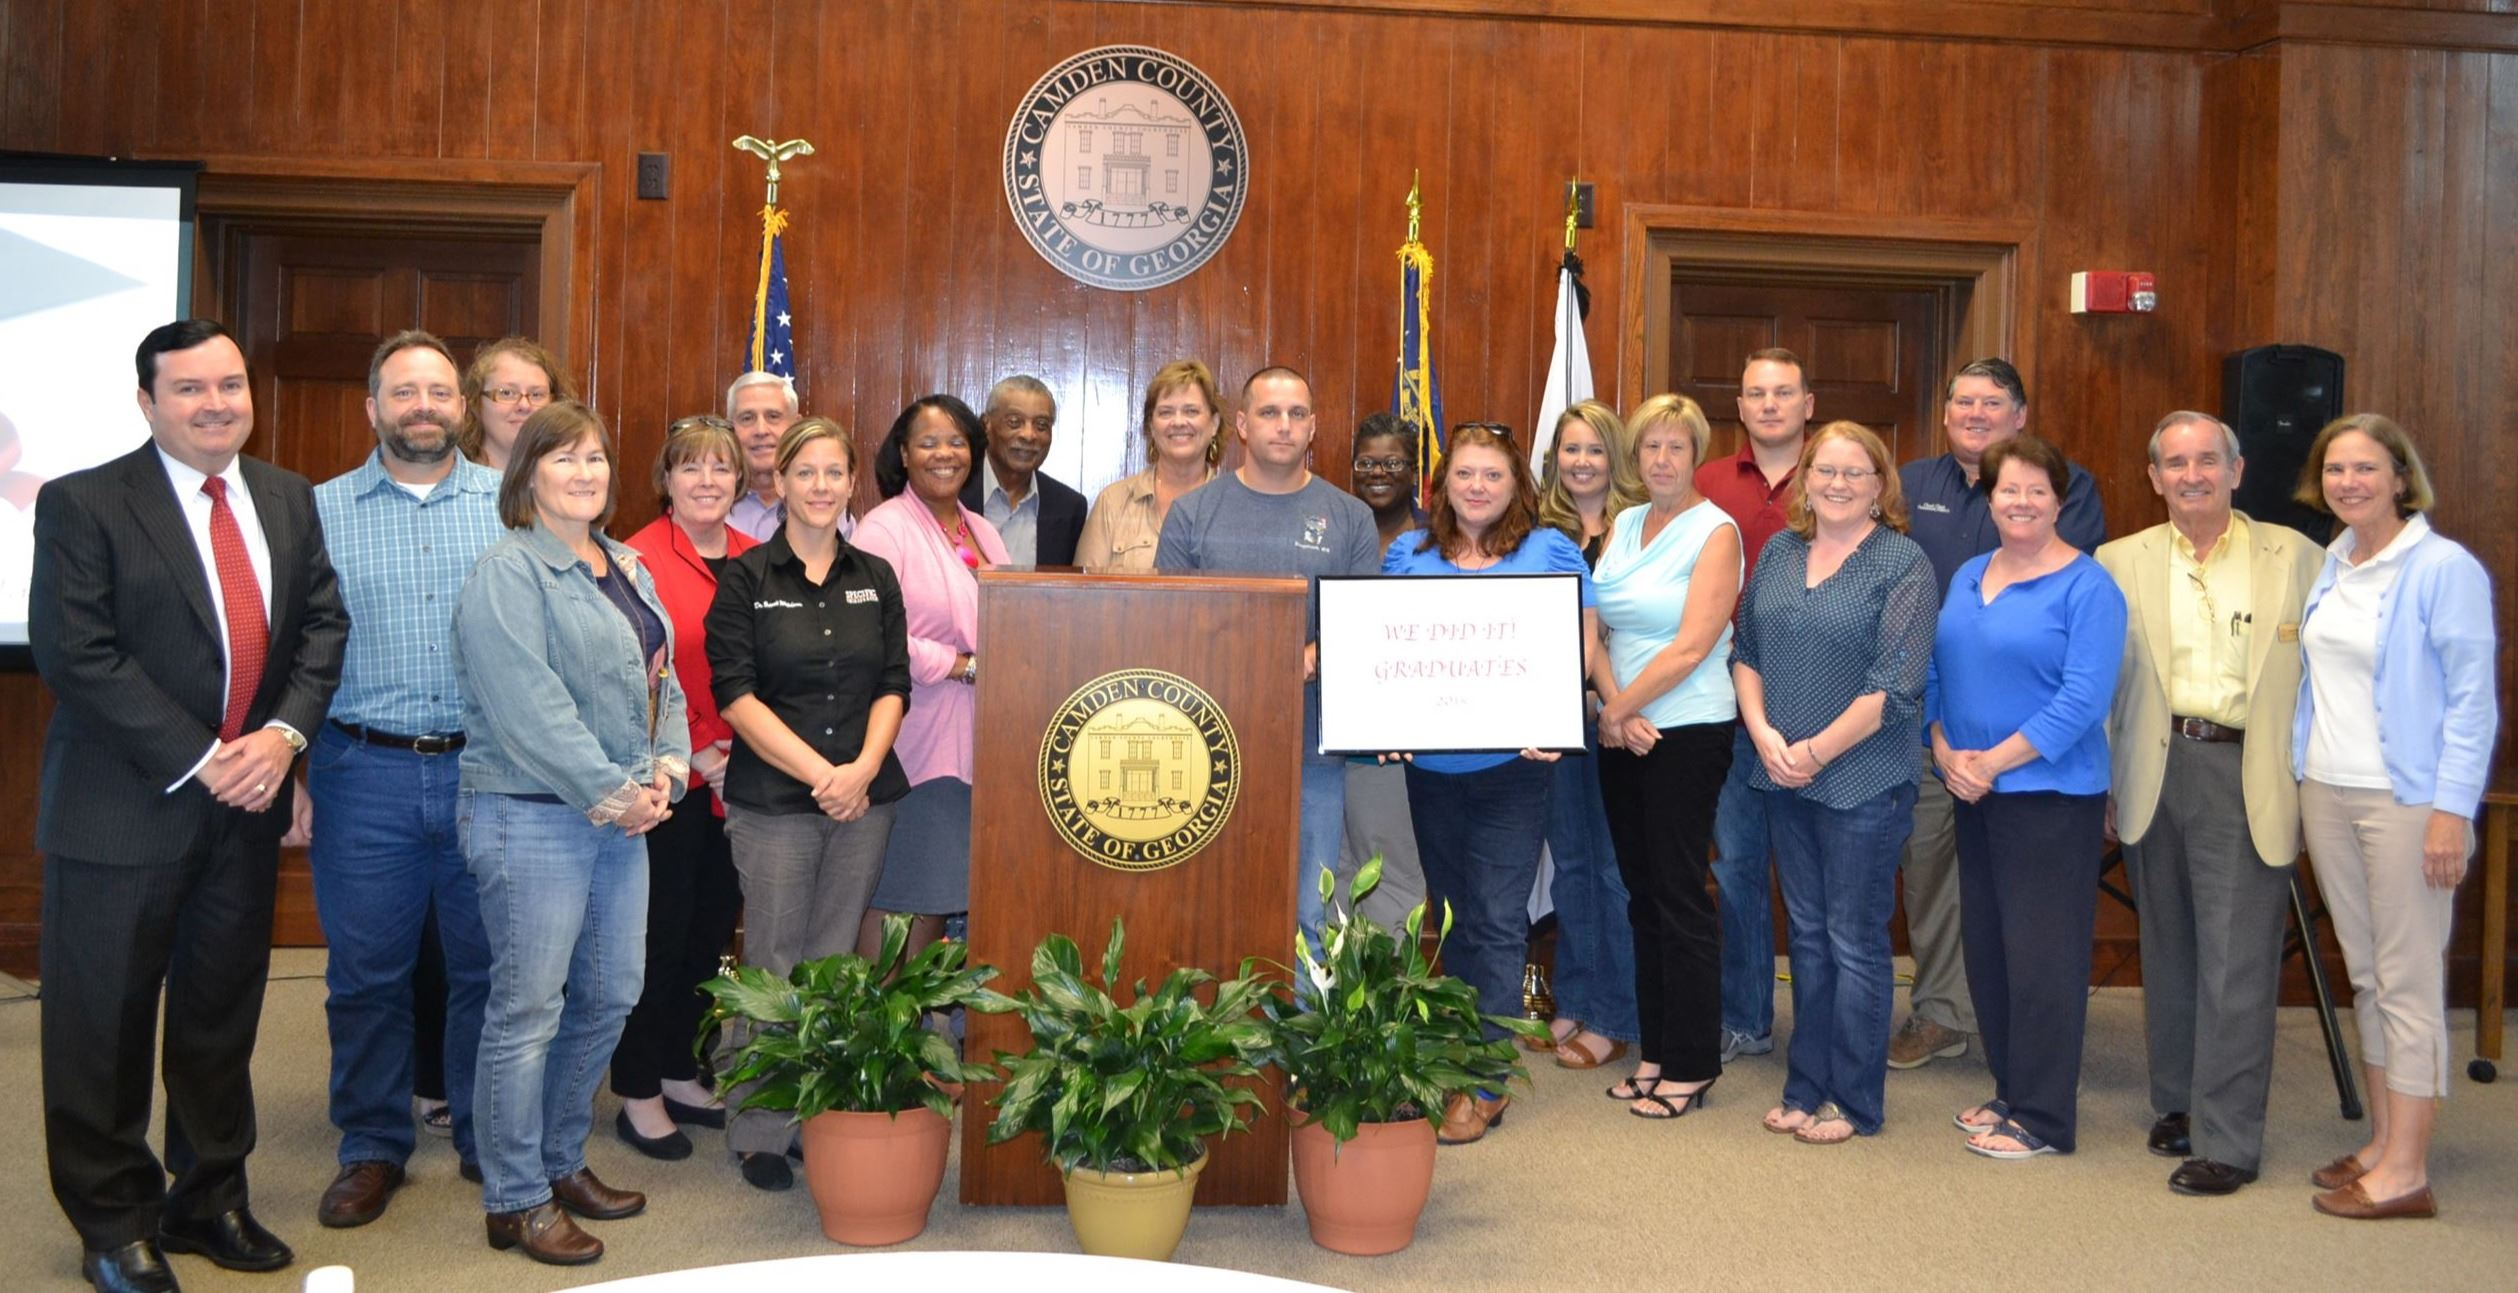 Fall 2015 Citizens Class Participants posing with sign